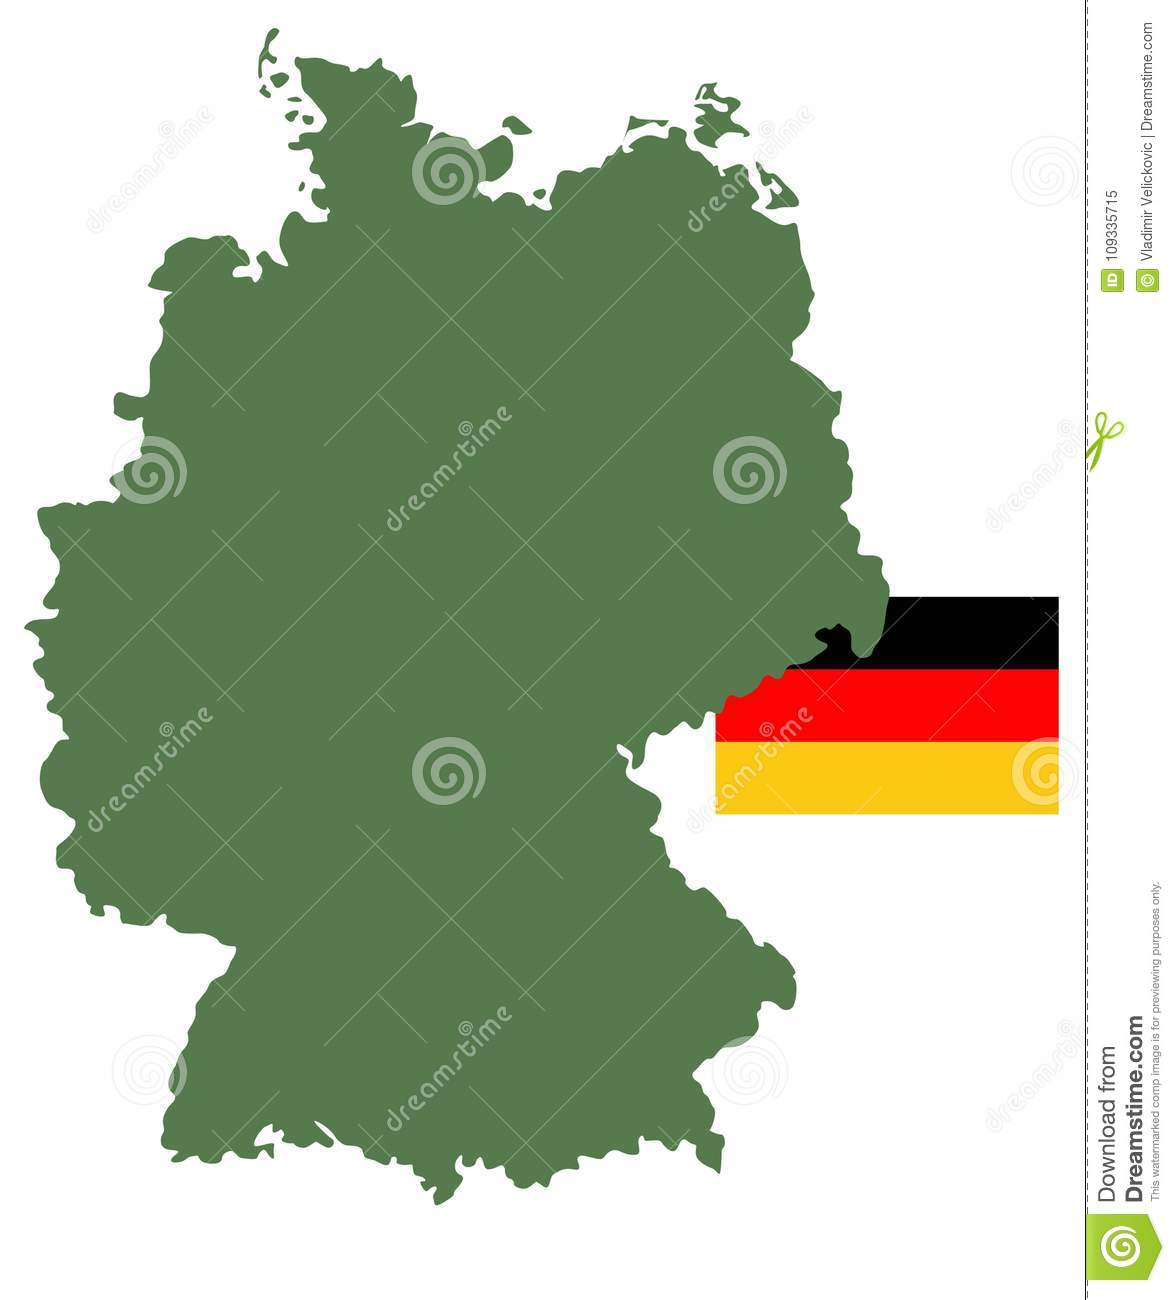 Germany Map And Flag - Federal Republic Of Germany Stock ... on south sudan flag and map, england flag and map, slovakia flag and map, mozambique flag and map, british flag and map, iran flag and map, kuwait flag and map, france flag and map, arizona flag and map, malaysia flag and map, israel flag and map, syria flag and map, belize flag and map, portugal flag and map, zambia flag and map, chad flag and map, china flag and map, ireland flag and map, lebanon flag and map, ukraine flag and map,